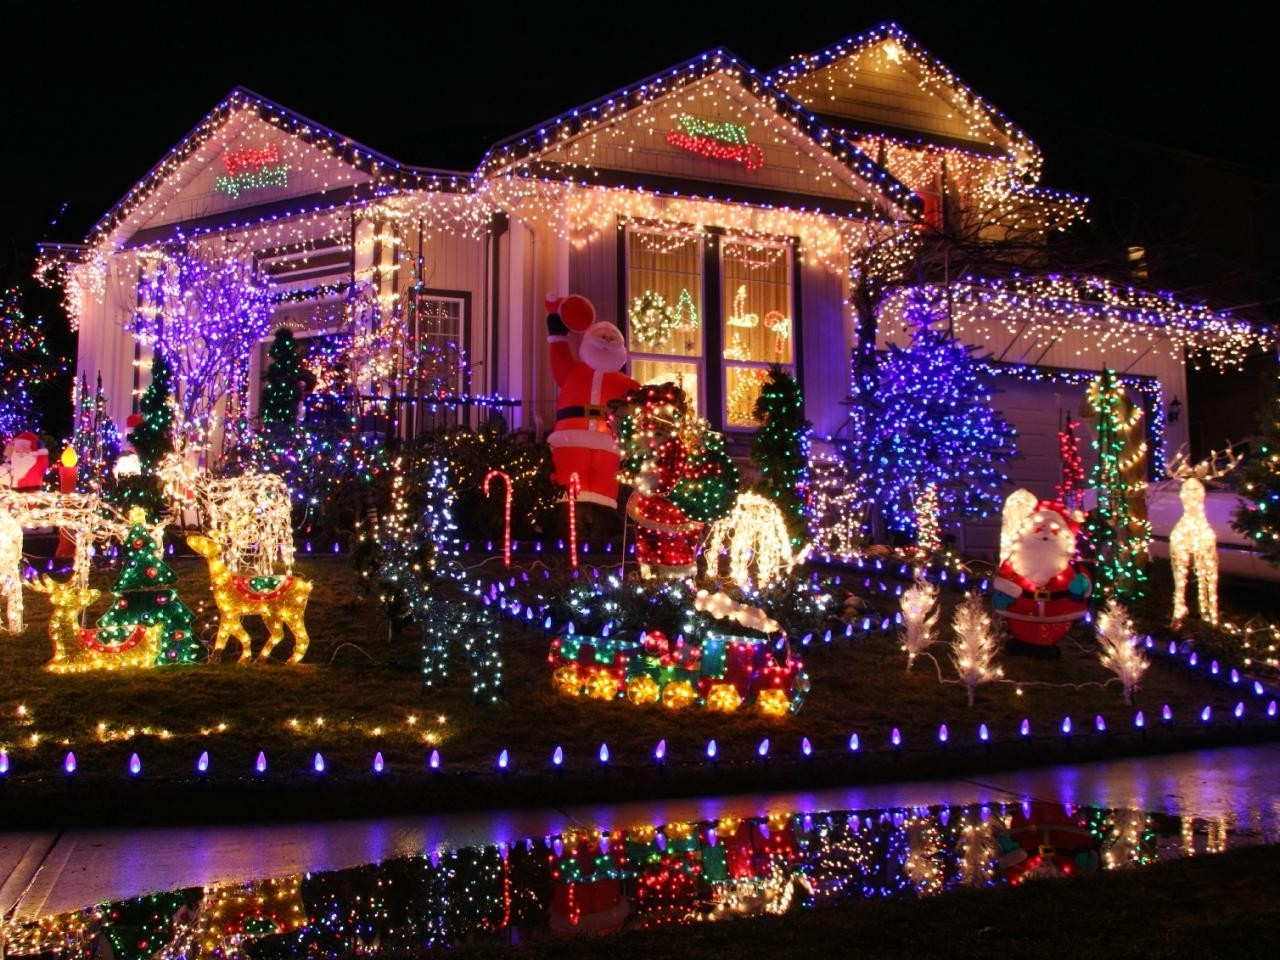 Outdoor Xmas Lanterns In 2018 Grinch Christmas Lights Outdoor Exalted 38 Awesome Outdoor Christmas (View 7 of 20)